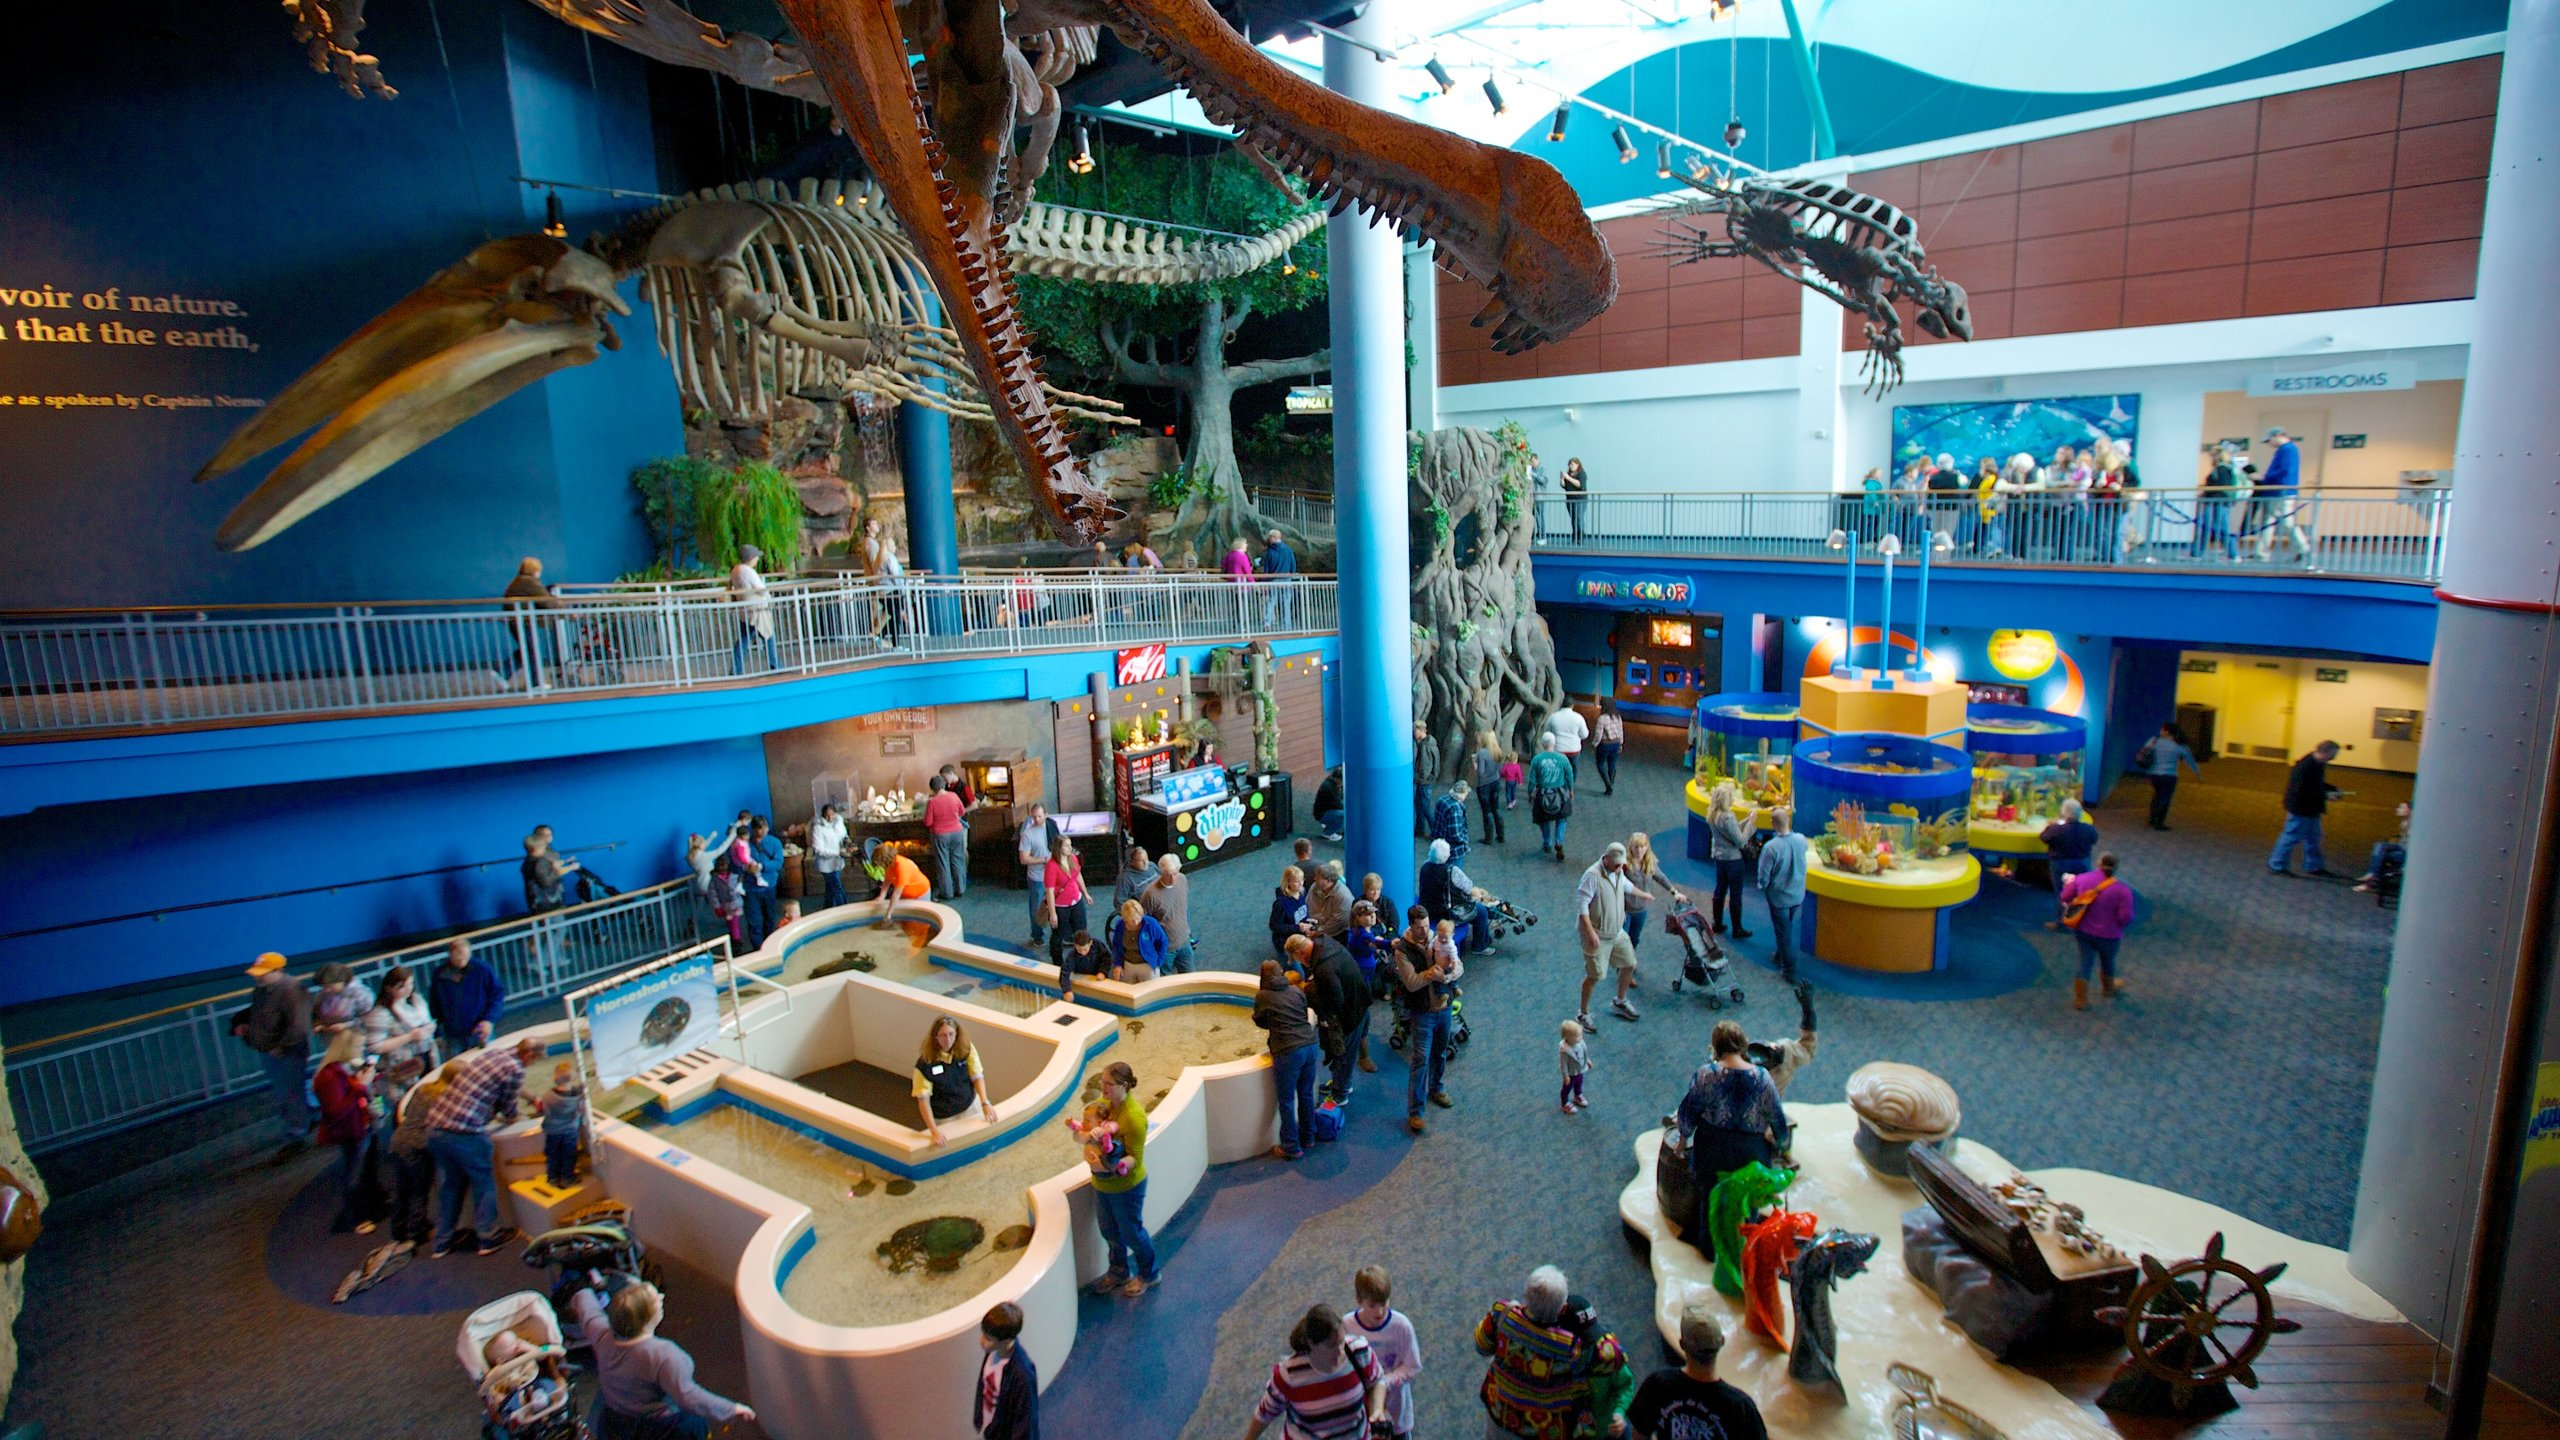 From sharks and stingrays, to penguins and octopus, get close to a colorful collection of tropical sea creatures at this walk-through aquarium.